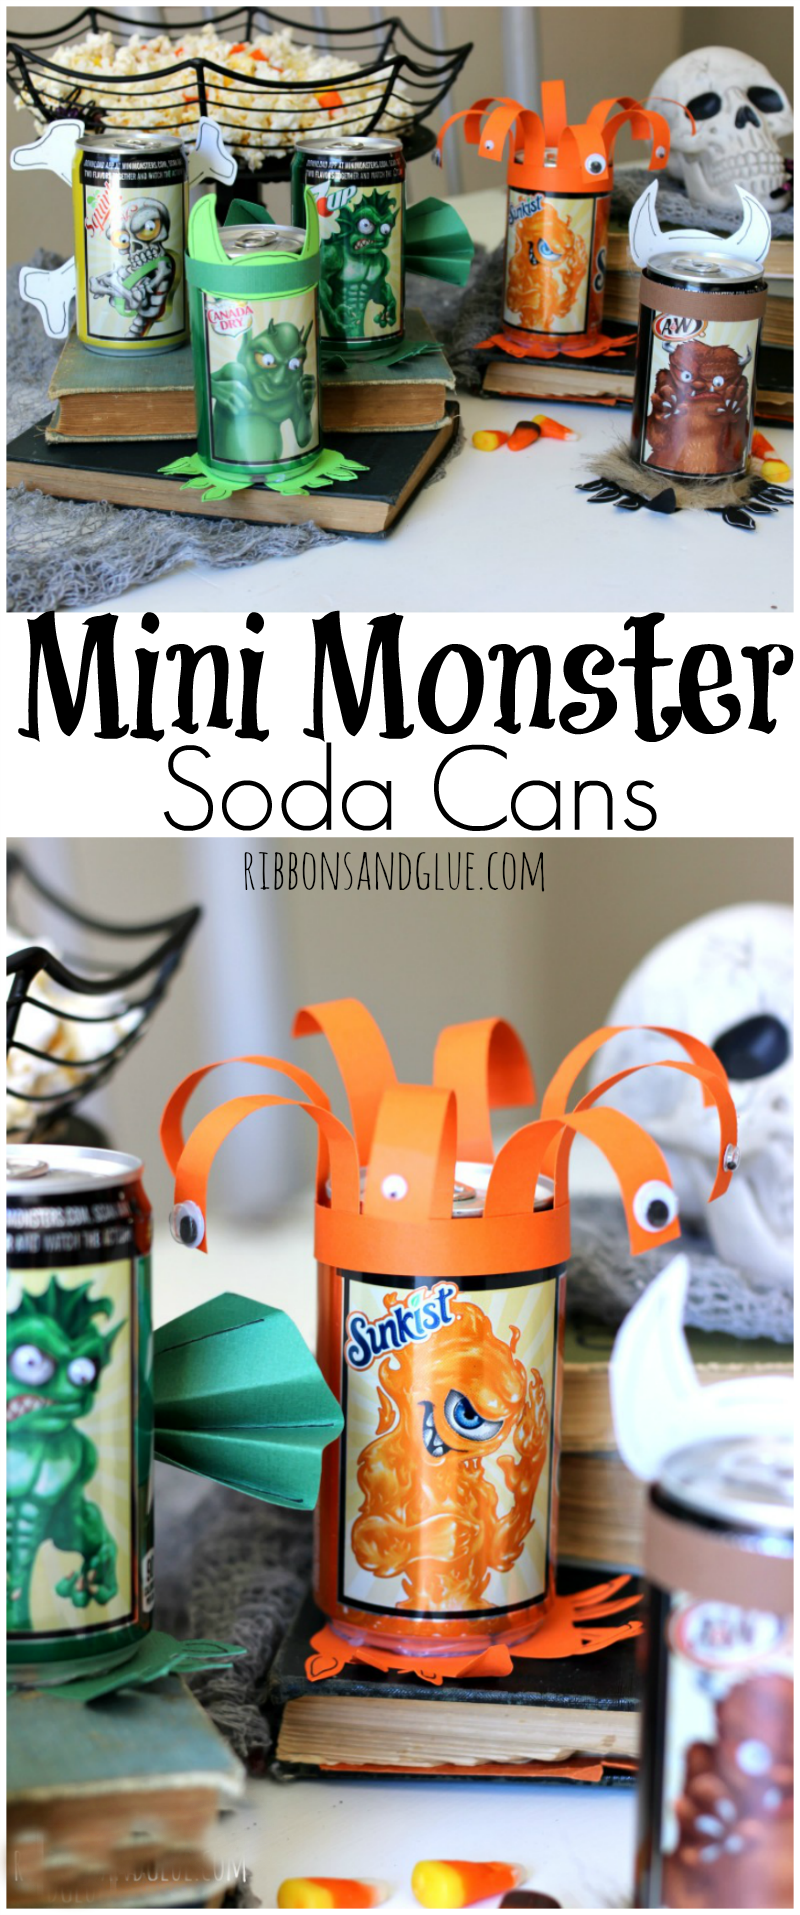 Halloween Mini Monster Soda Cans. Make the monsters come alive on Halloween Soda cans with googly eyes, fur, paper and fur. Fun Halloween Party activity. #WalmartMonsters #MiniMonsters #ad